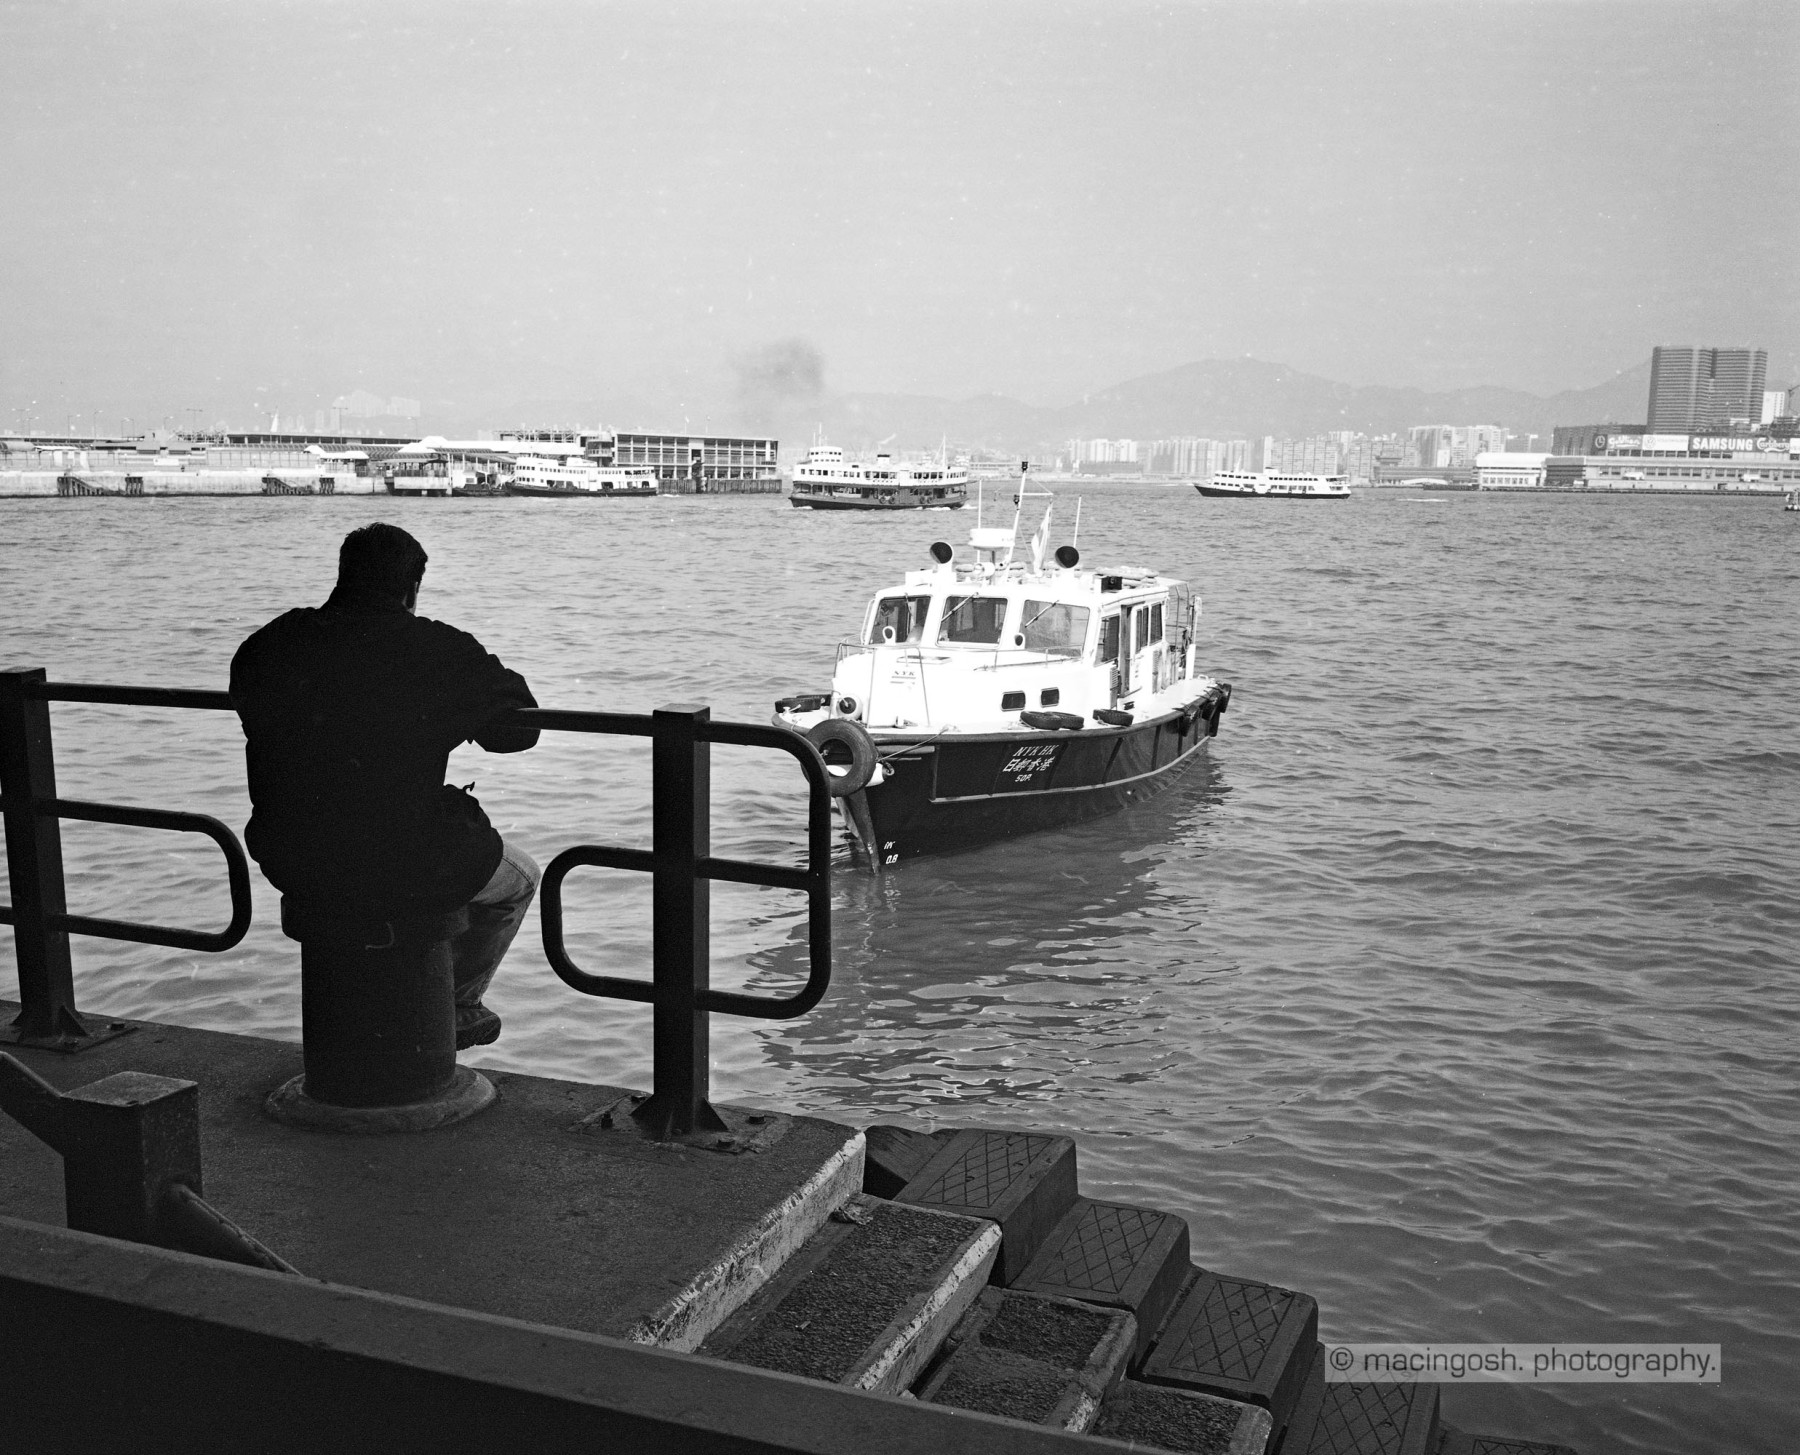 The harbour of Hong Kong, macingosh photographie